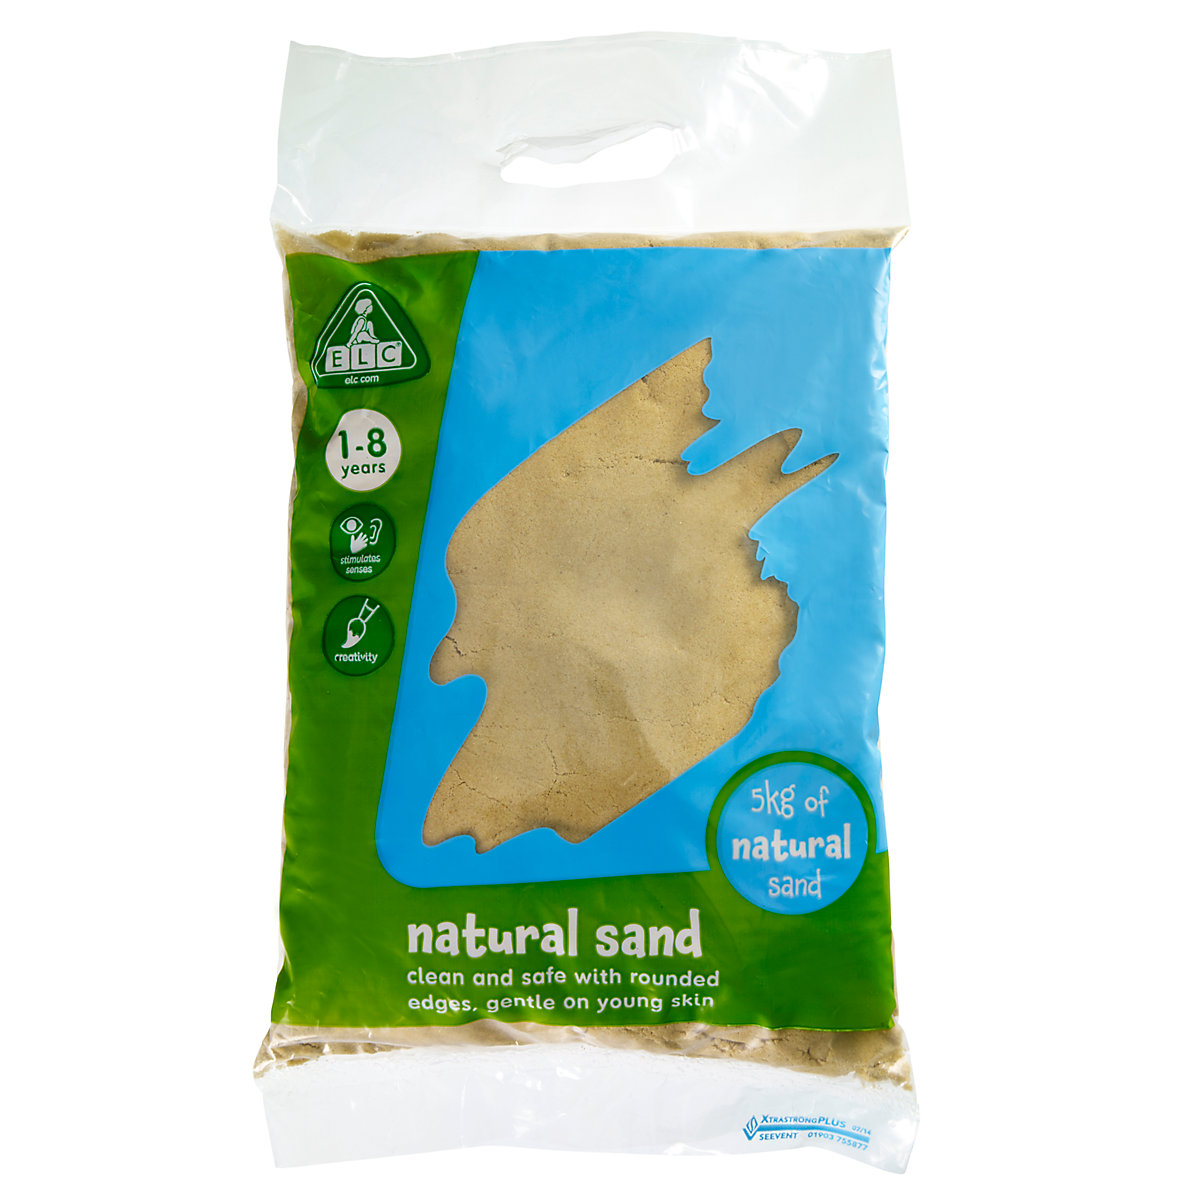 New ELC Natural Play Sand – 5kg Bag Toy From 1 year